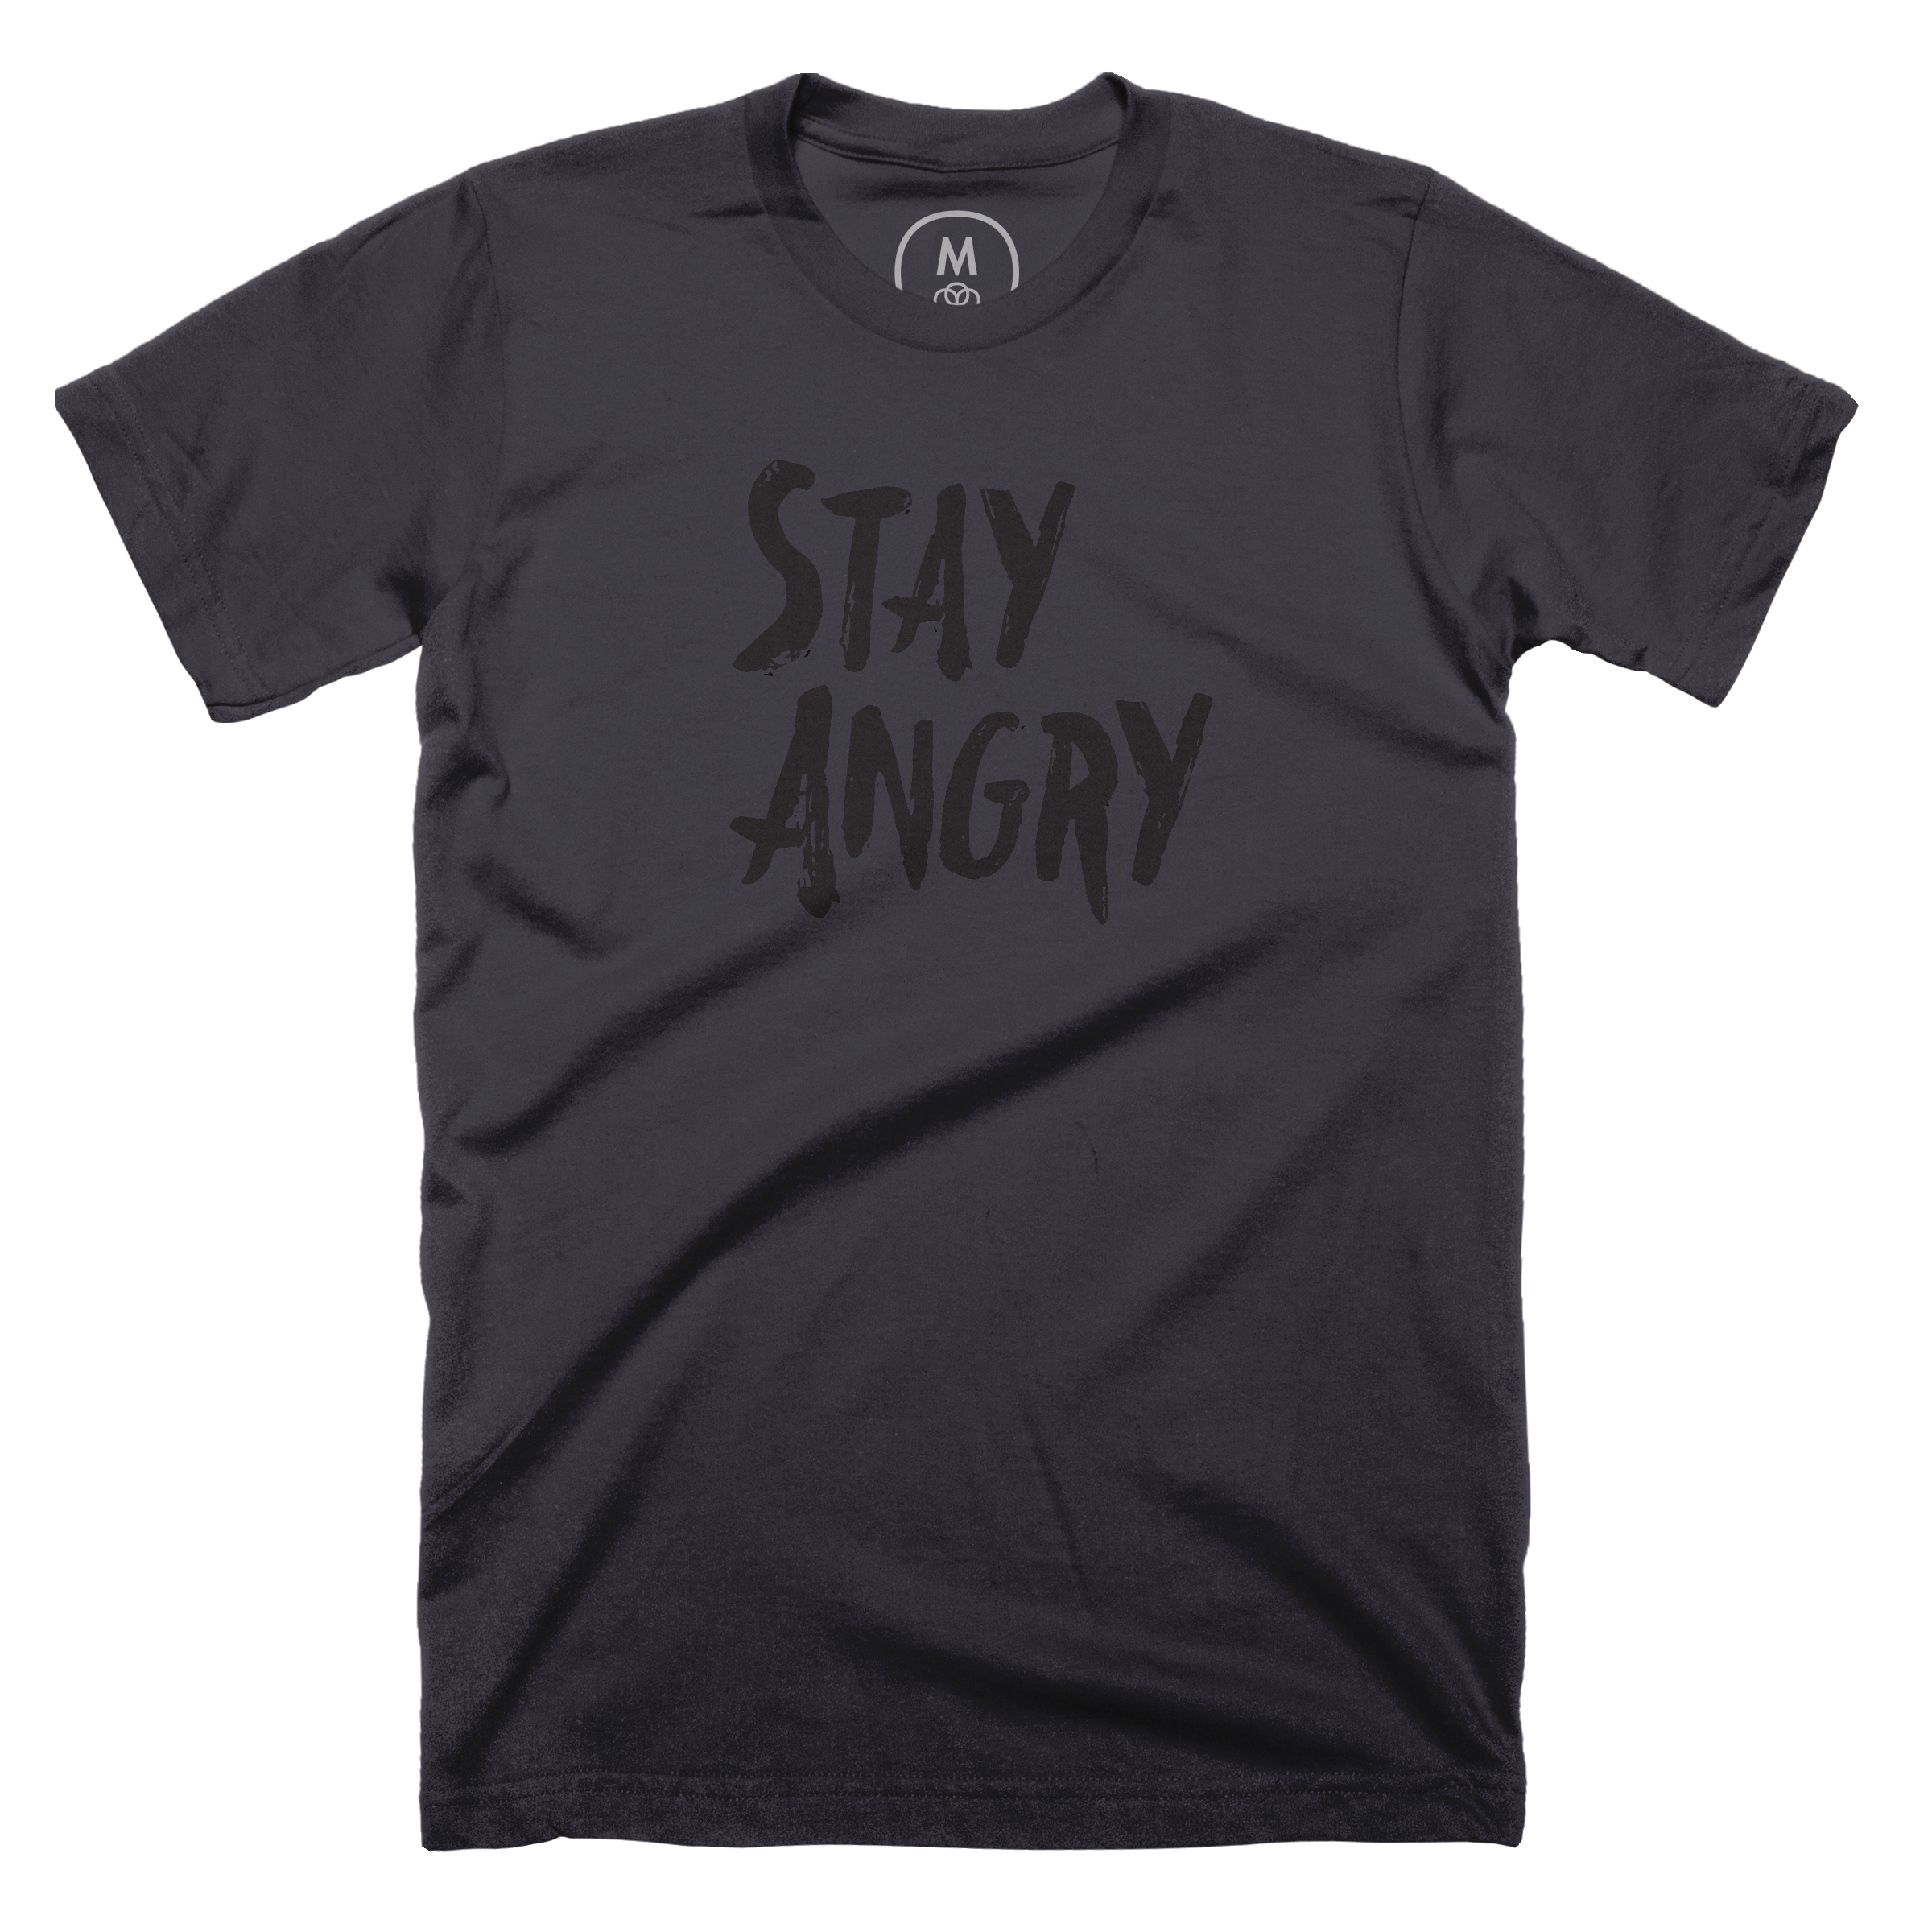 Stay Angry Heavy Metal (Back)